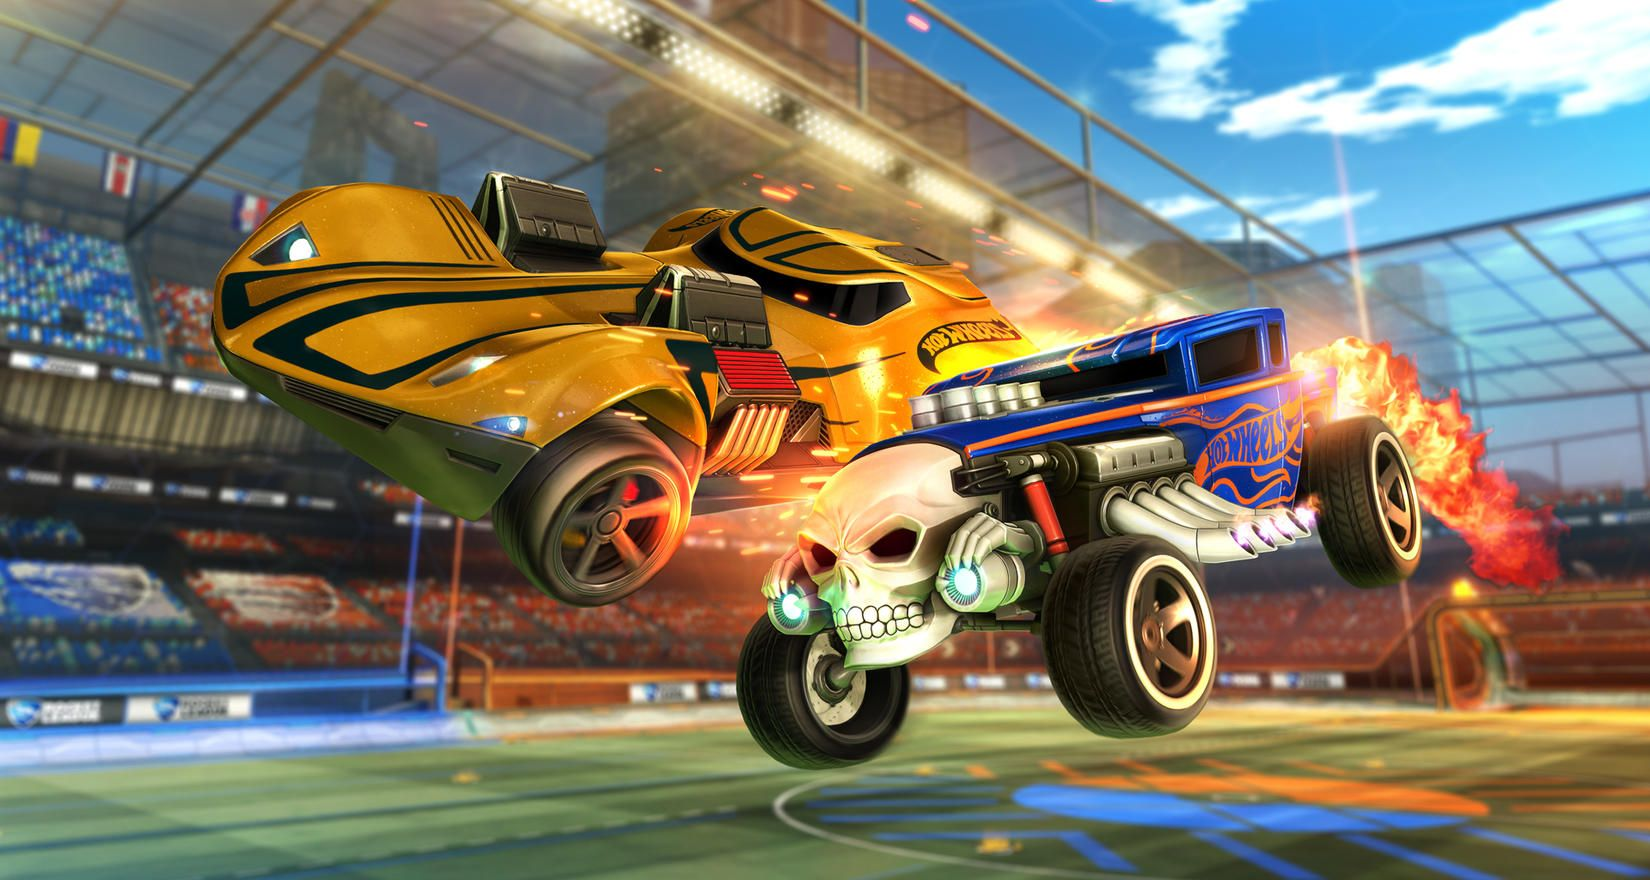 Sony won't allow cross-play for Rocket League, Minecraft thanks to